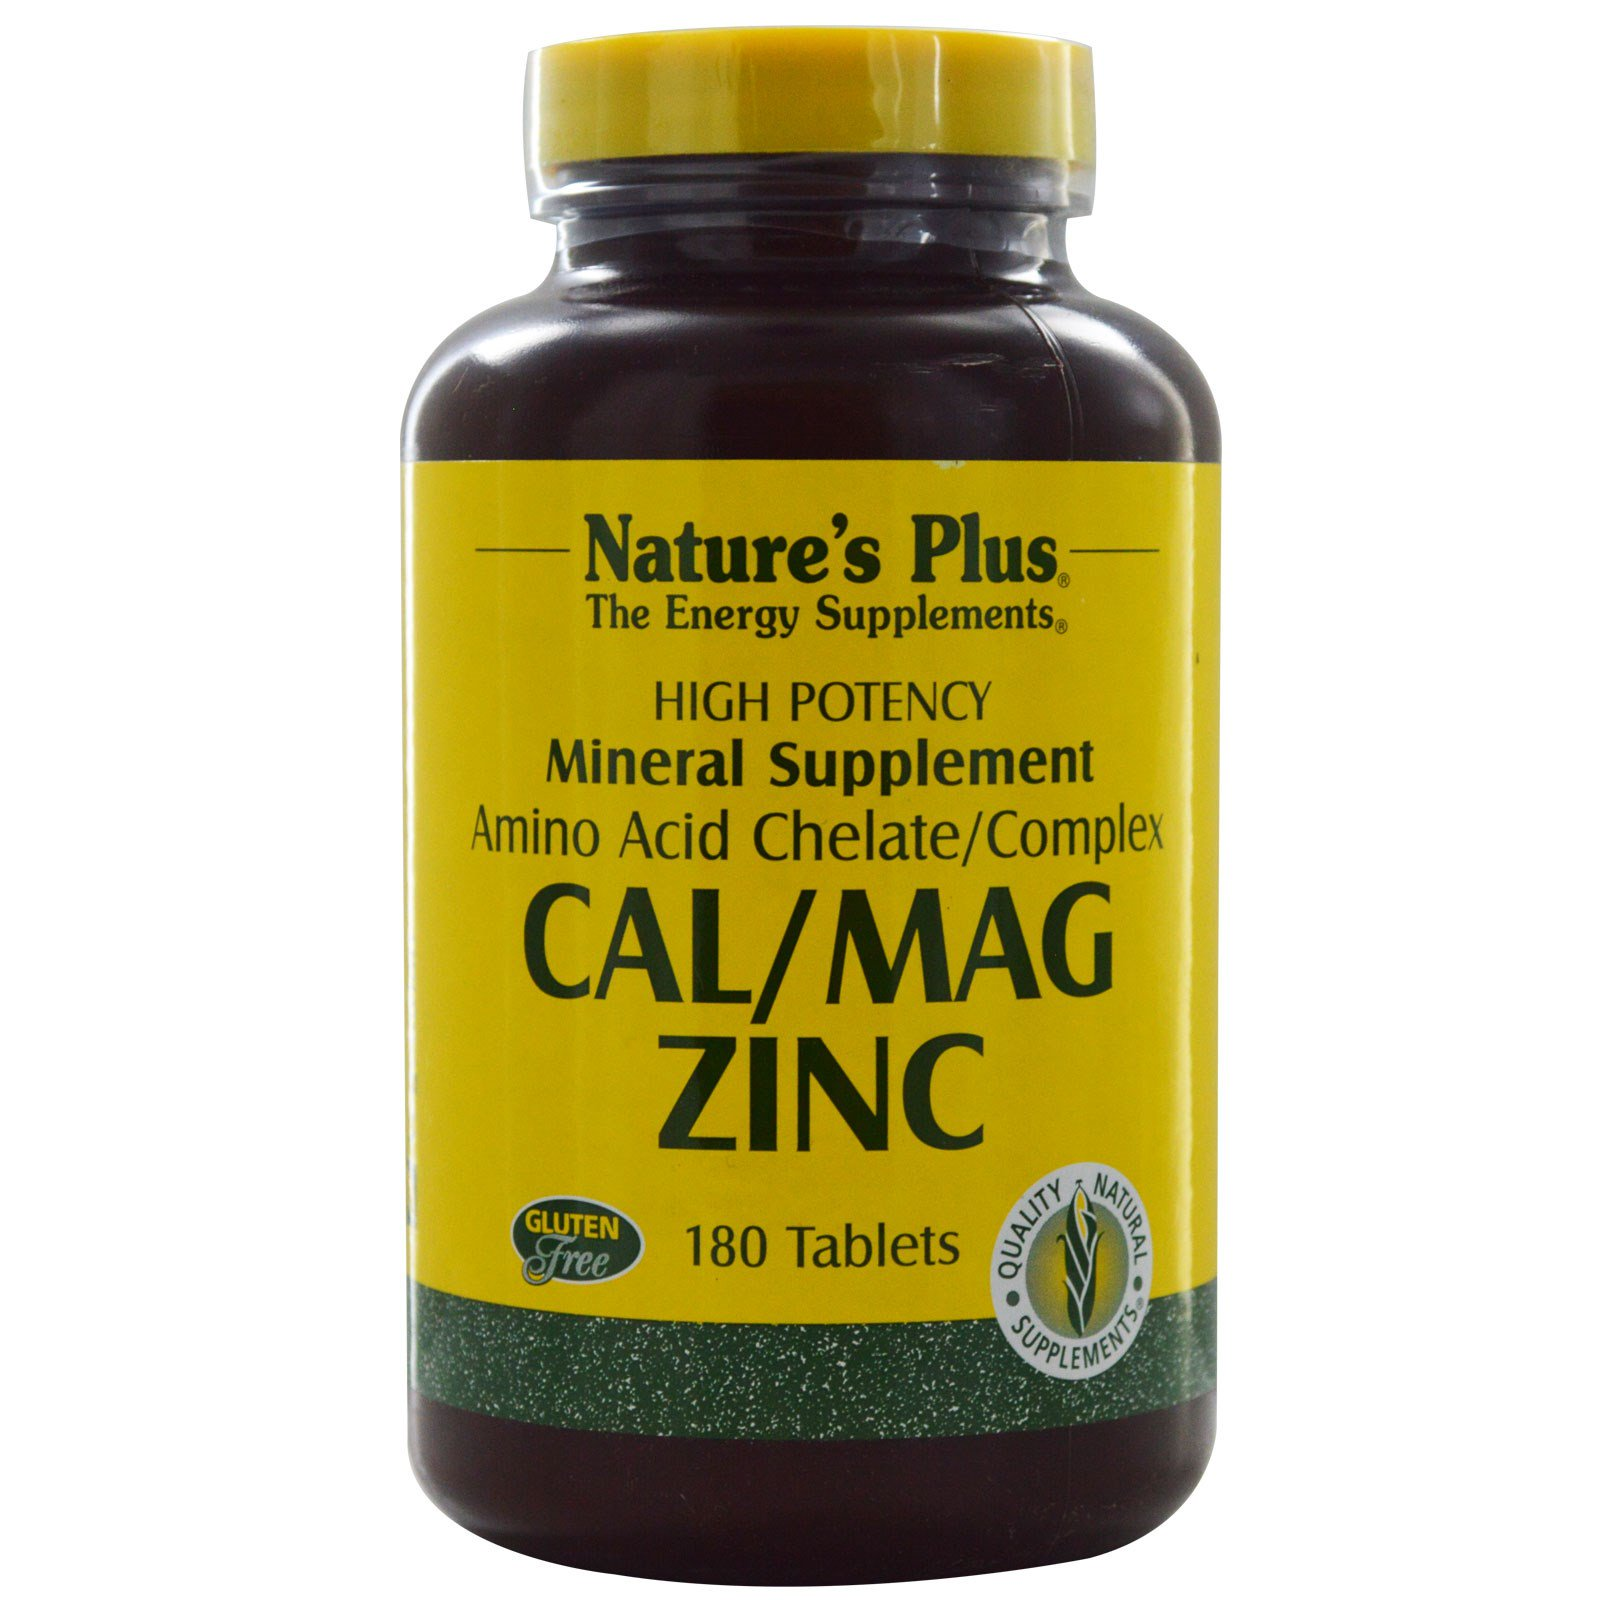 Image of Cal/Mag Zinc (180 Tablets) - Nature's Plus 0097467033665